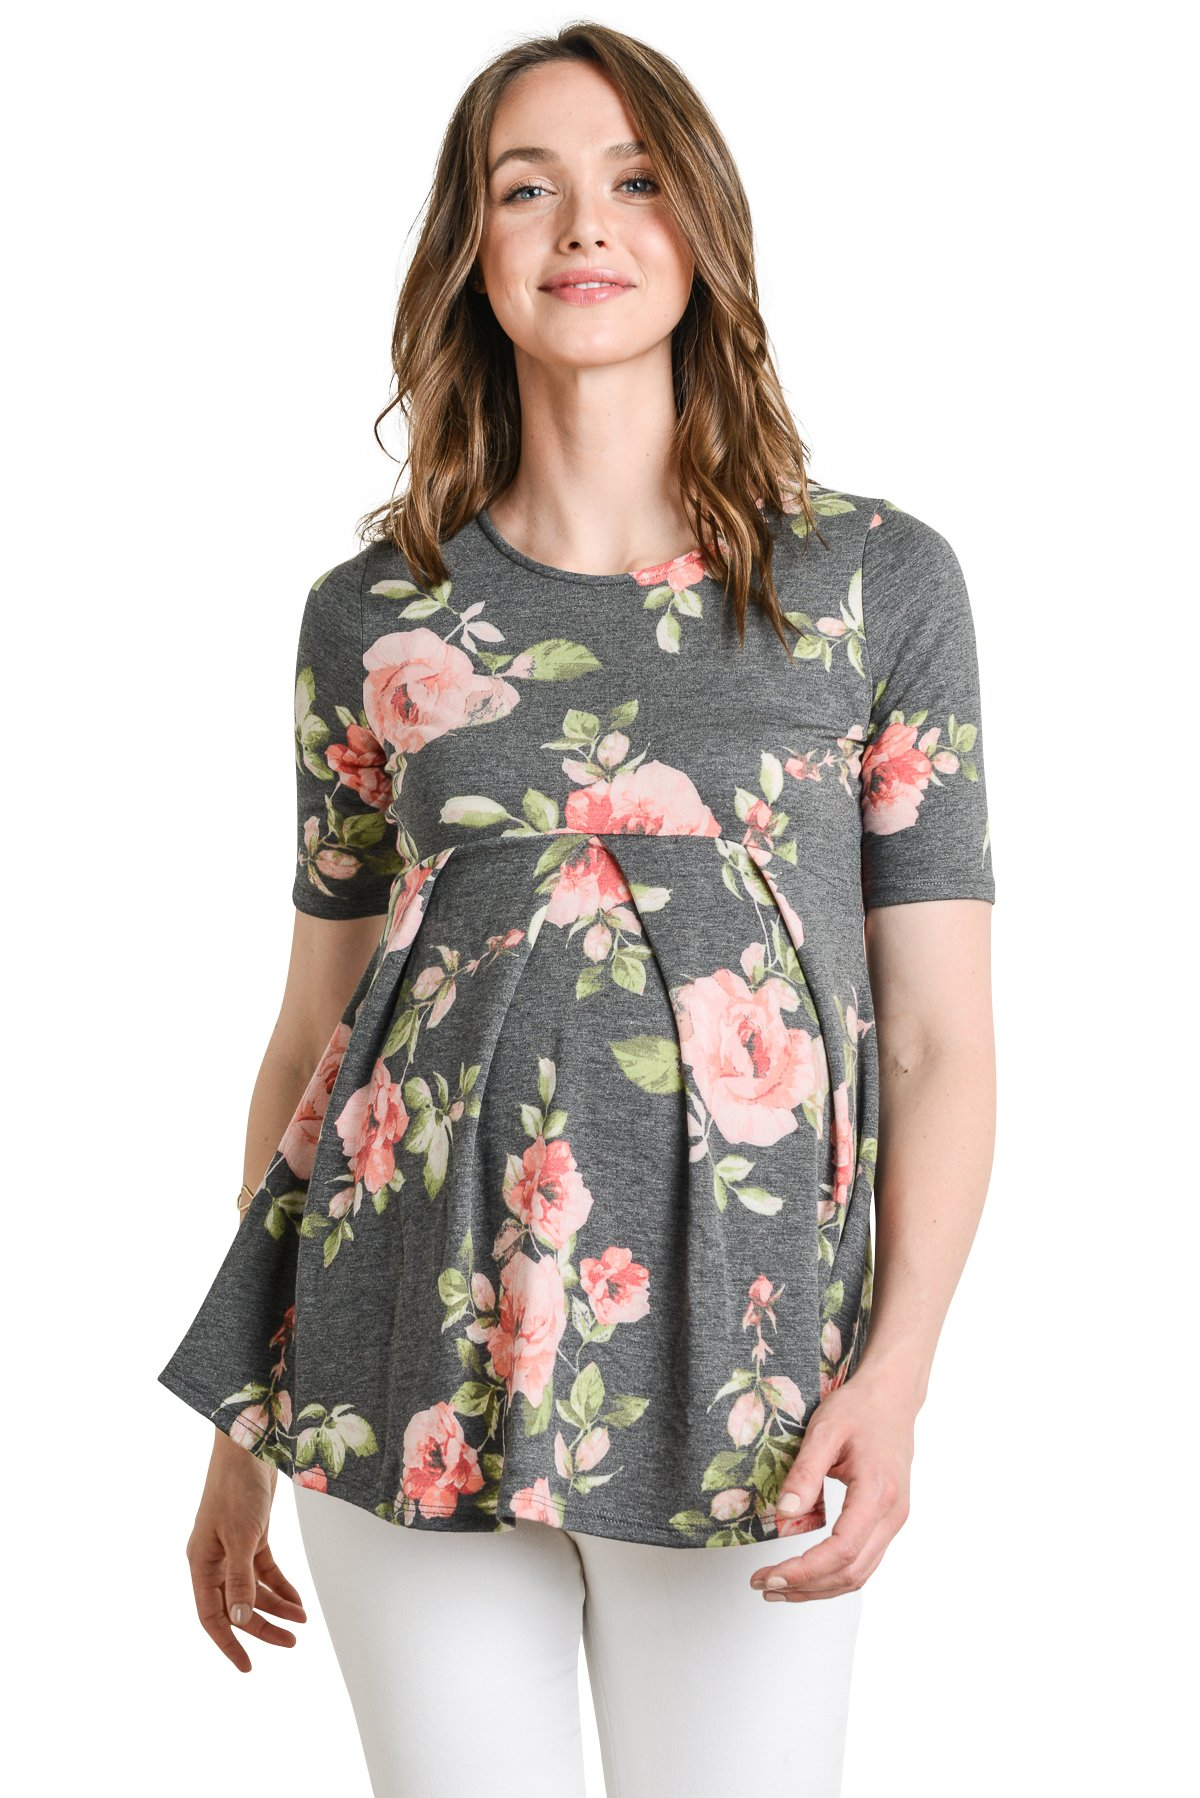 LaClef Women's Round Neck Front Pleat Peplum Maternity Top (Black Floral, Large)